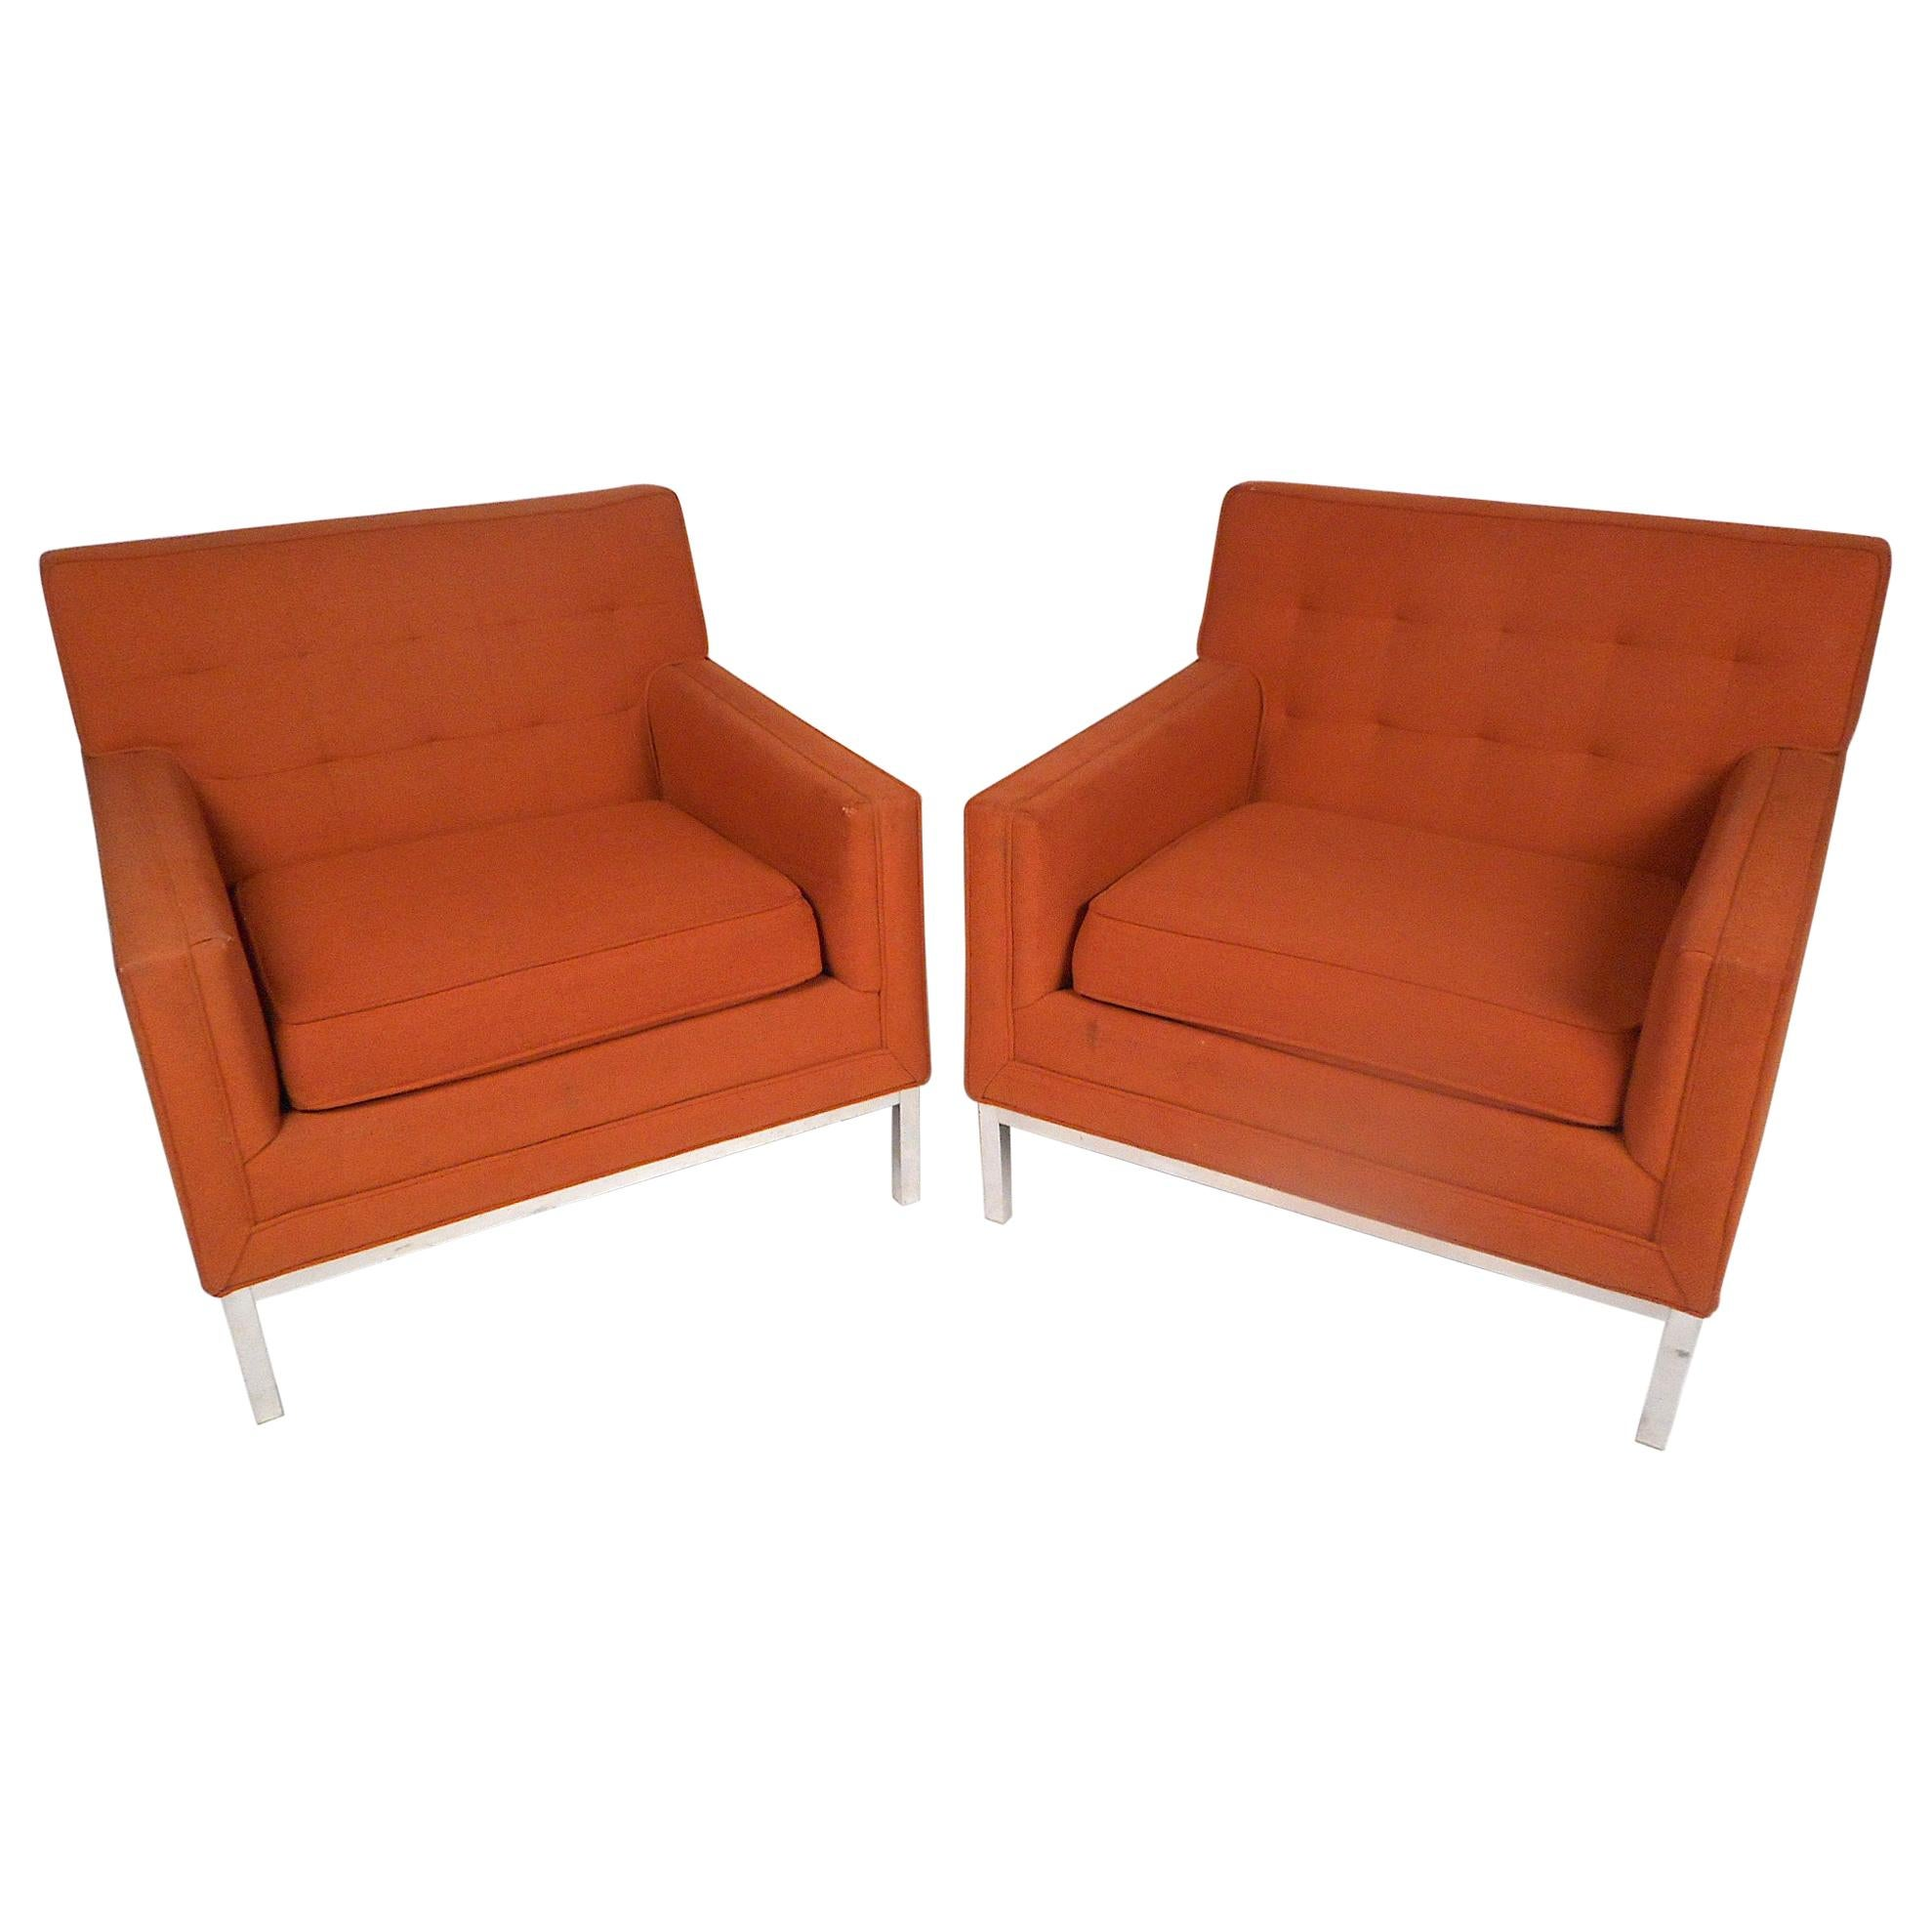 Midcentury Lounge Chairs after Knoll, a Pair